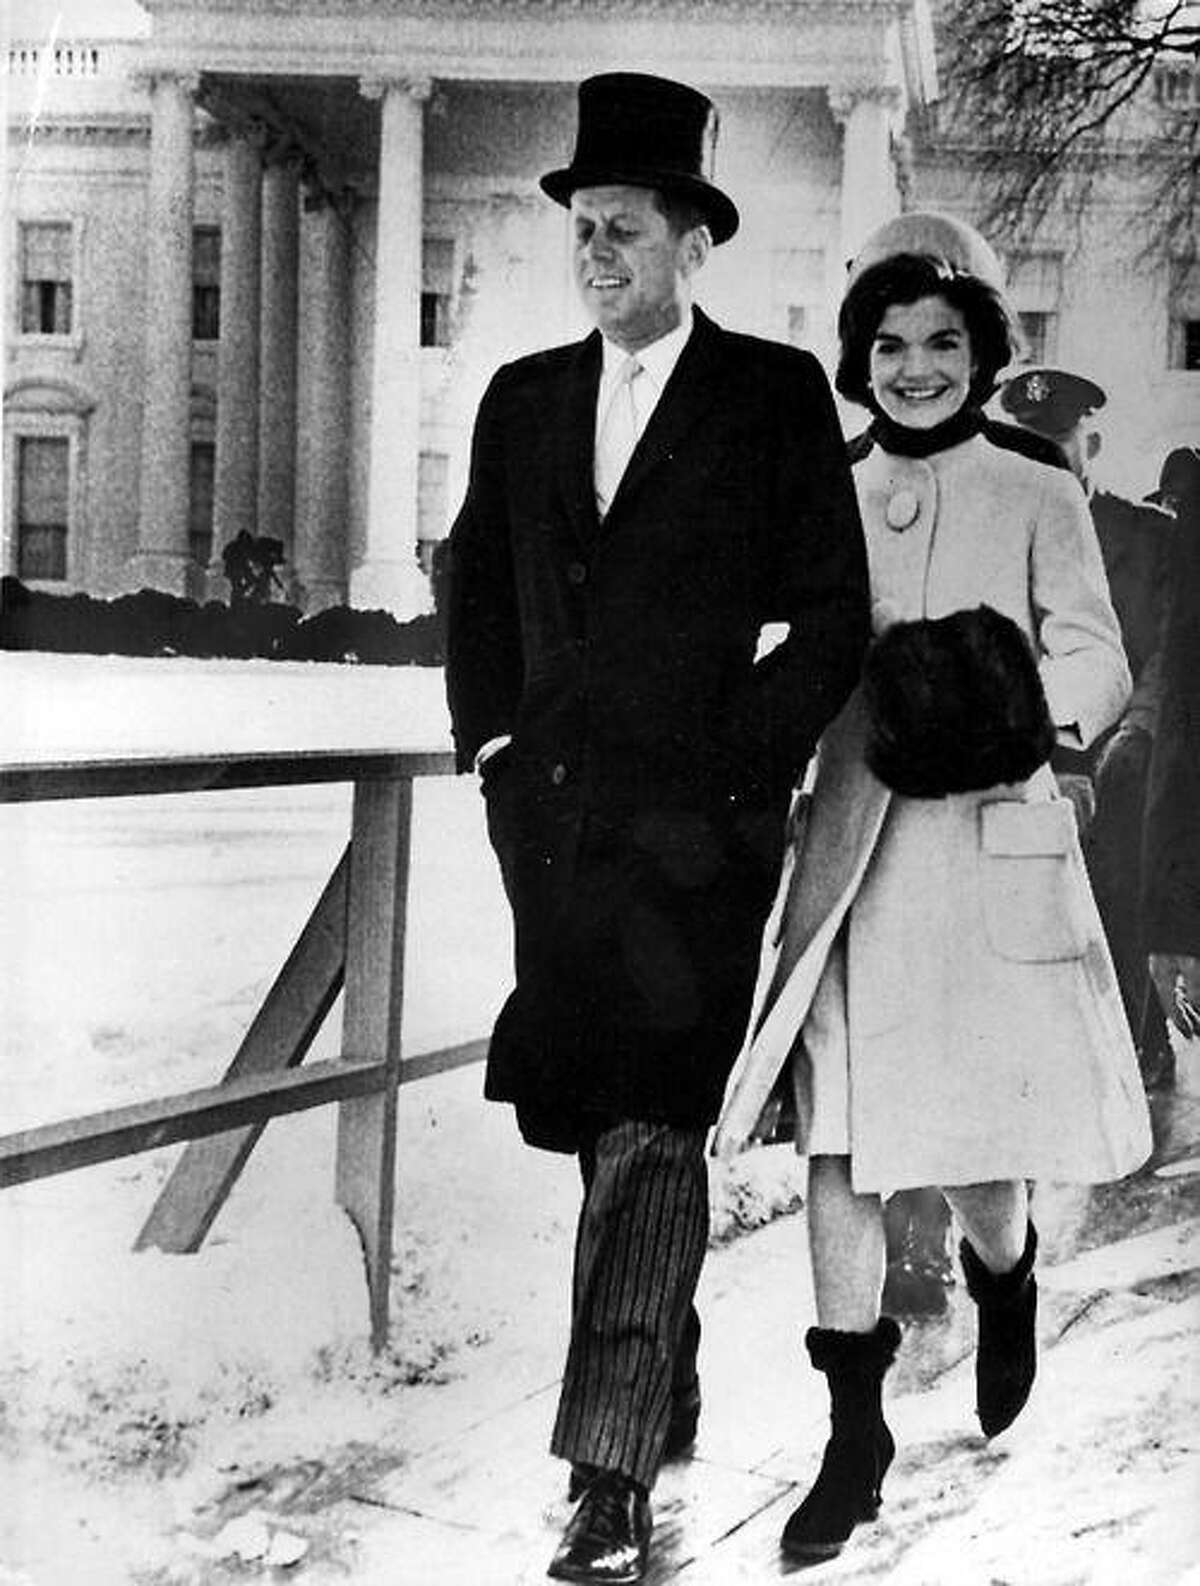 President John F. Kennedy and first lady Jacqueline Kennedy on Inauguration Day, Jan. 20, 1961.